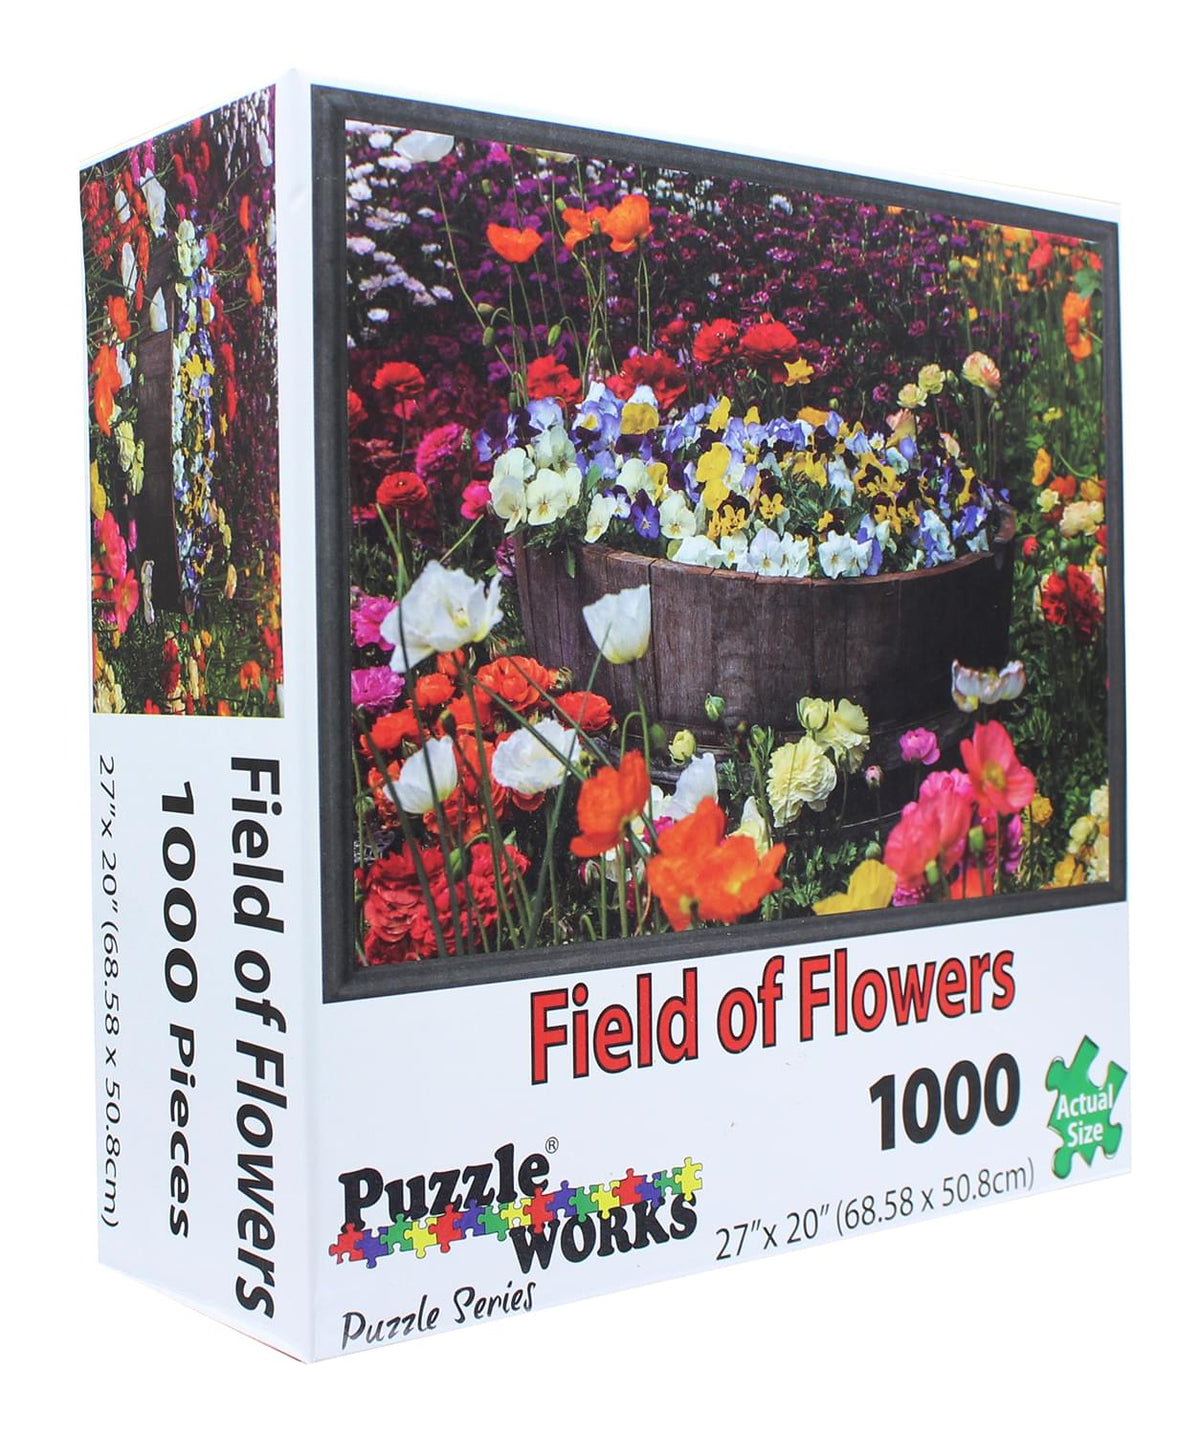 PuzzleWorks 1000 Piece Jigsaw Puzzle | Field Of Flowers